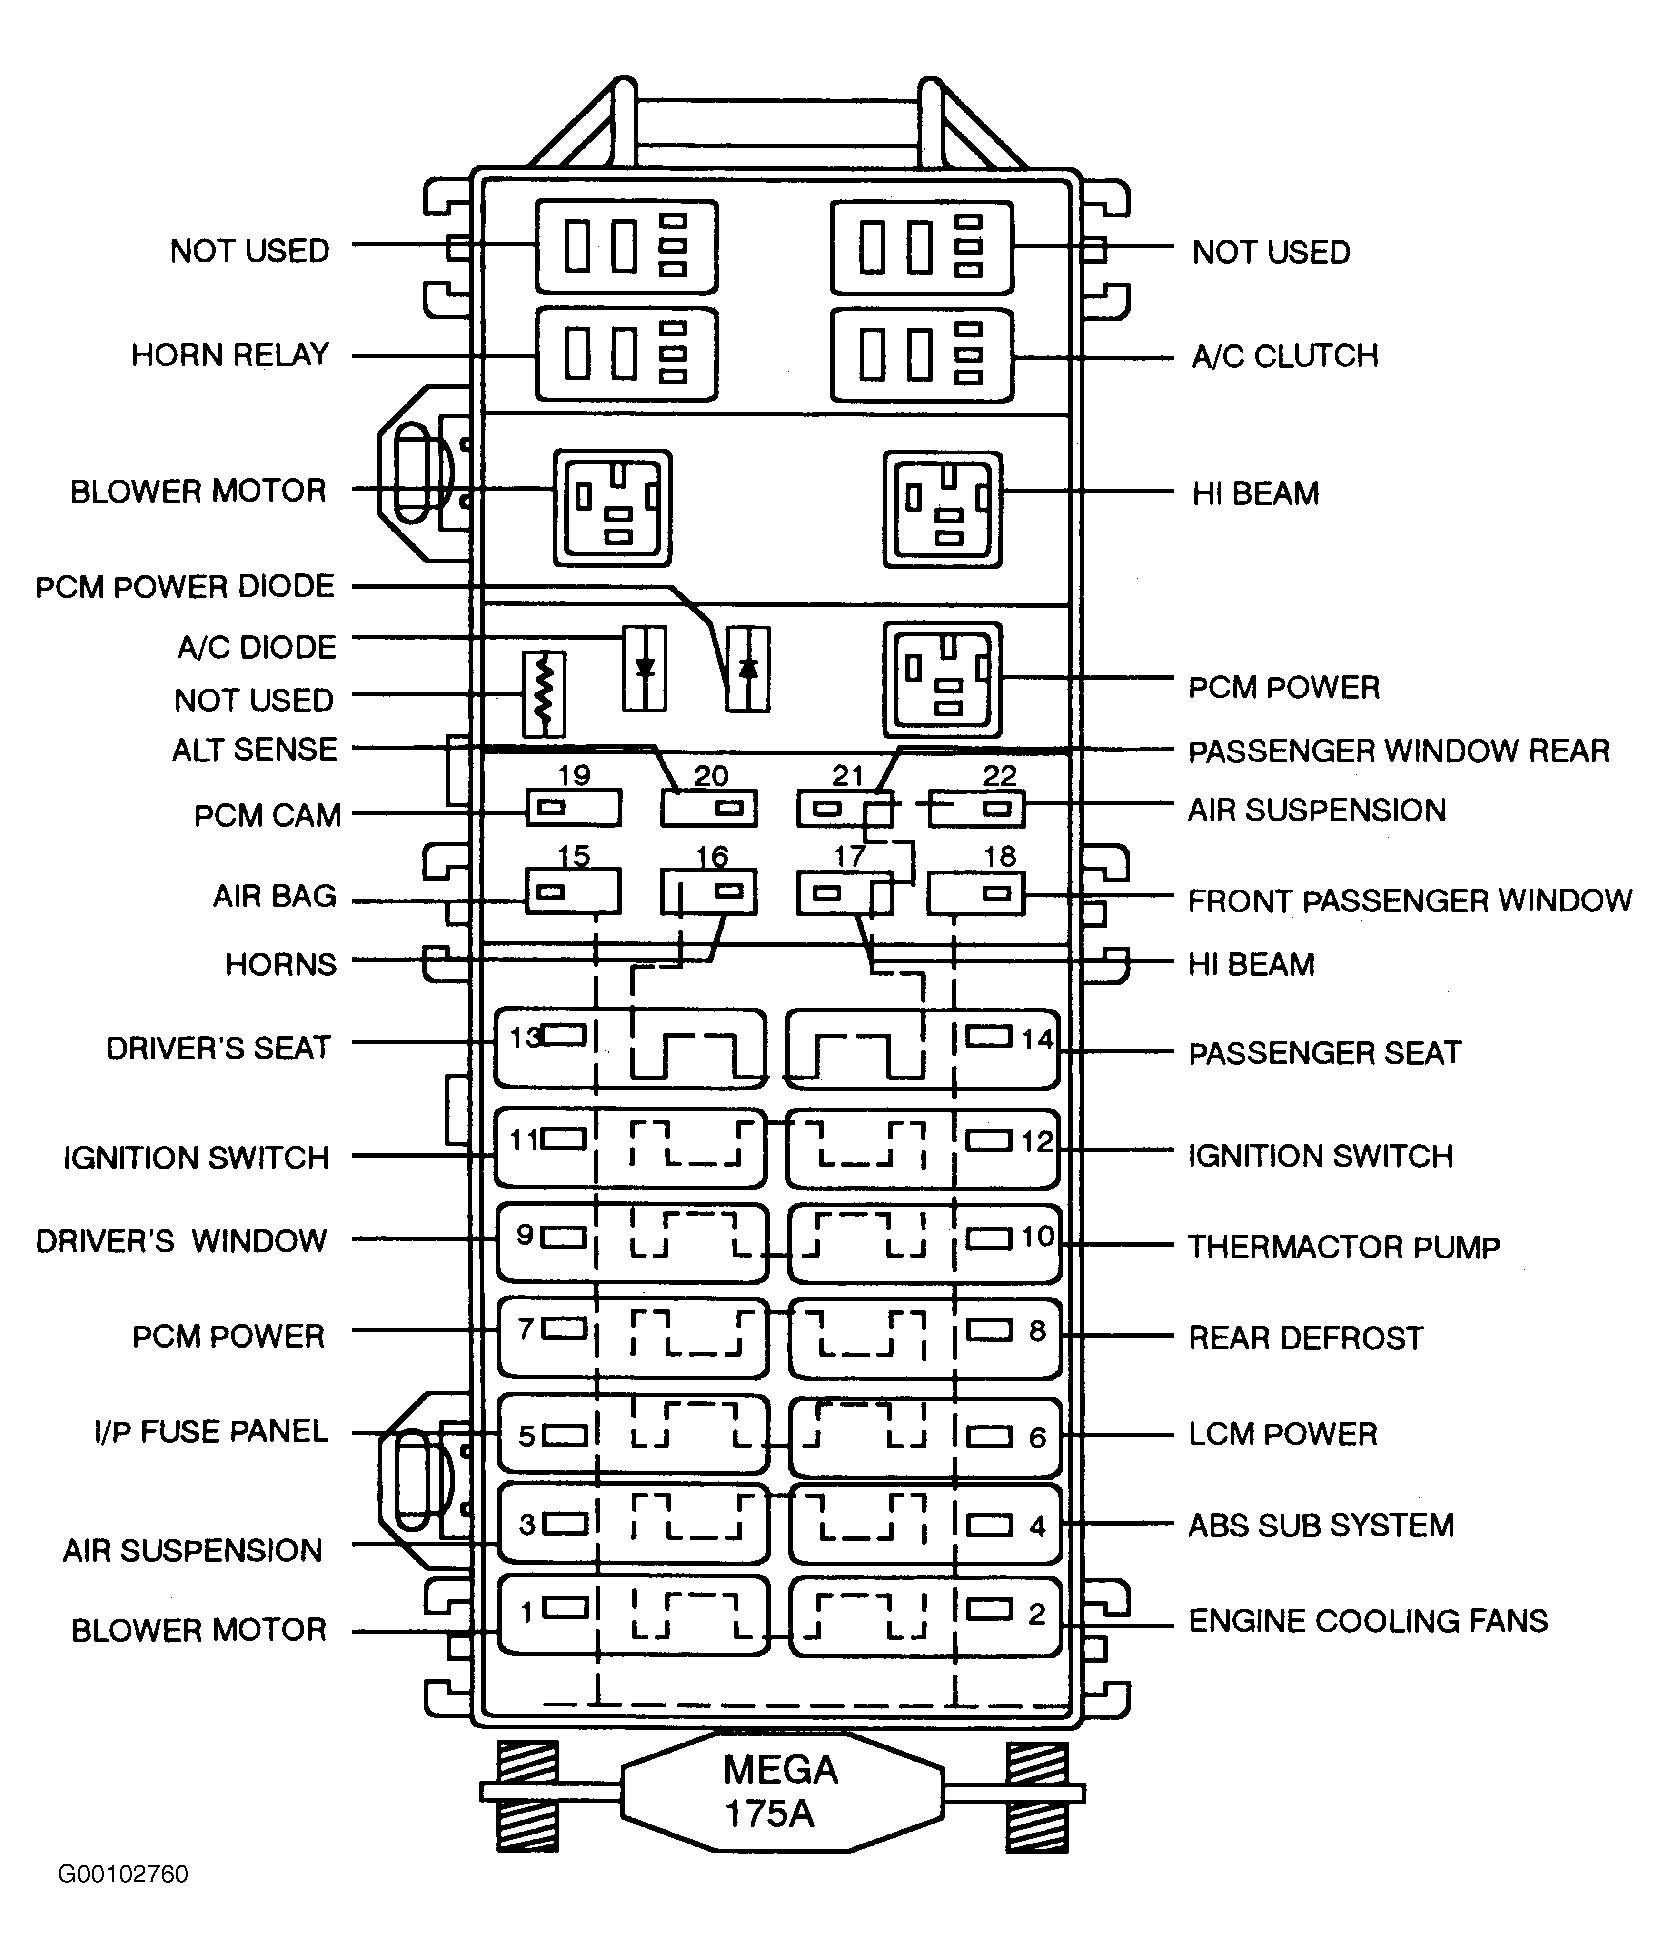 1998 Lincoln Town Car Engine Diagram How To Install Replace Spark 4 6l Fuse Box Wiring Of